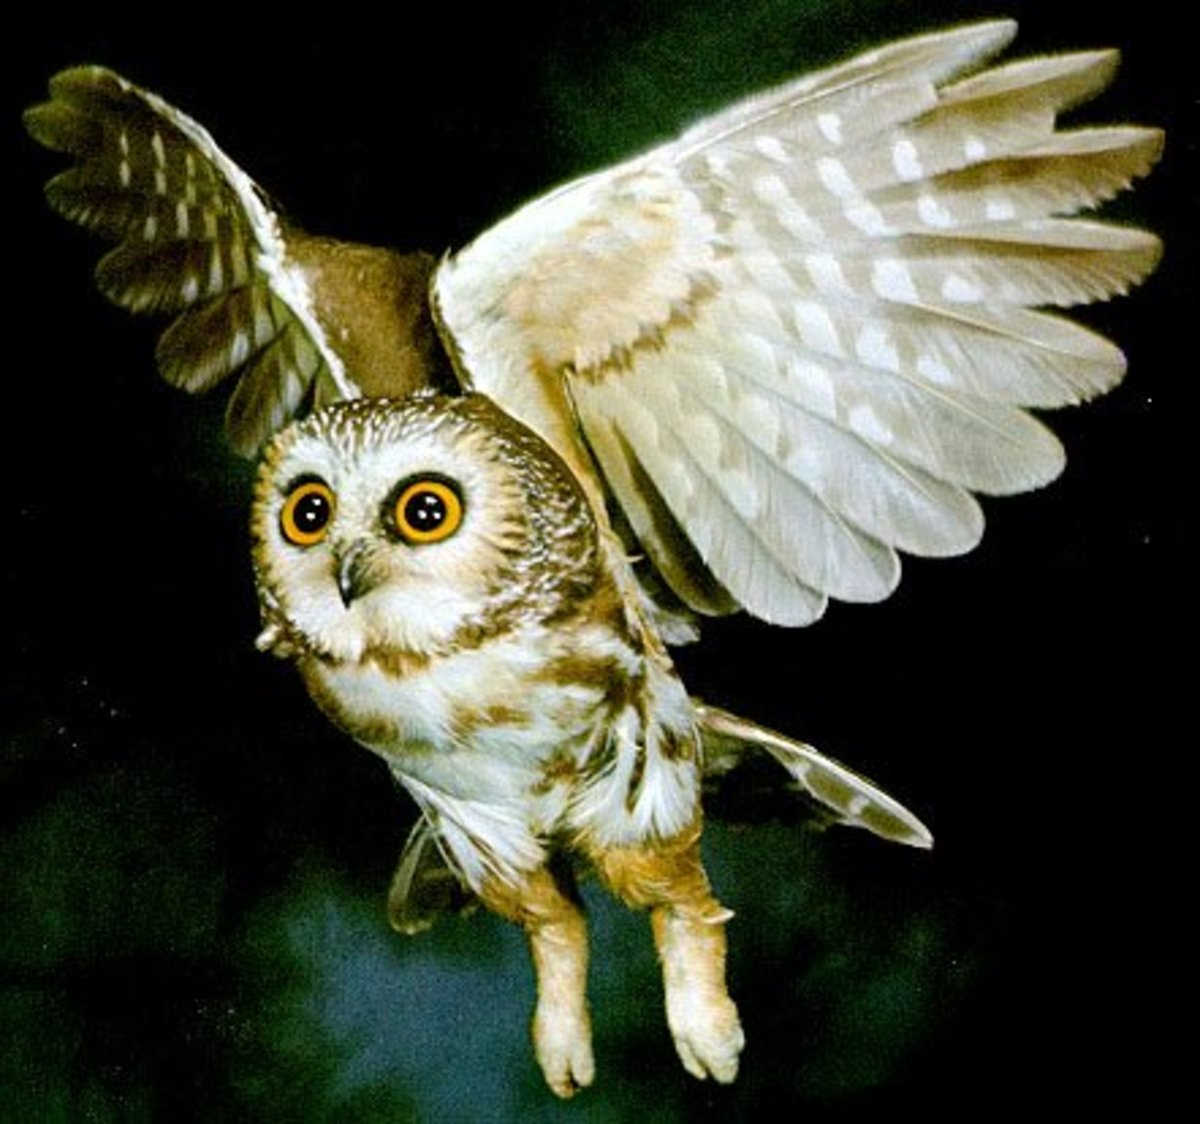 Being nocturnal animals, an owl is the symbol for those that enjoy staying up late.